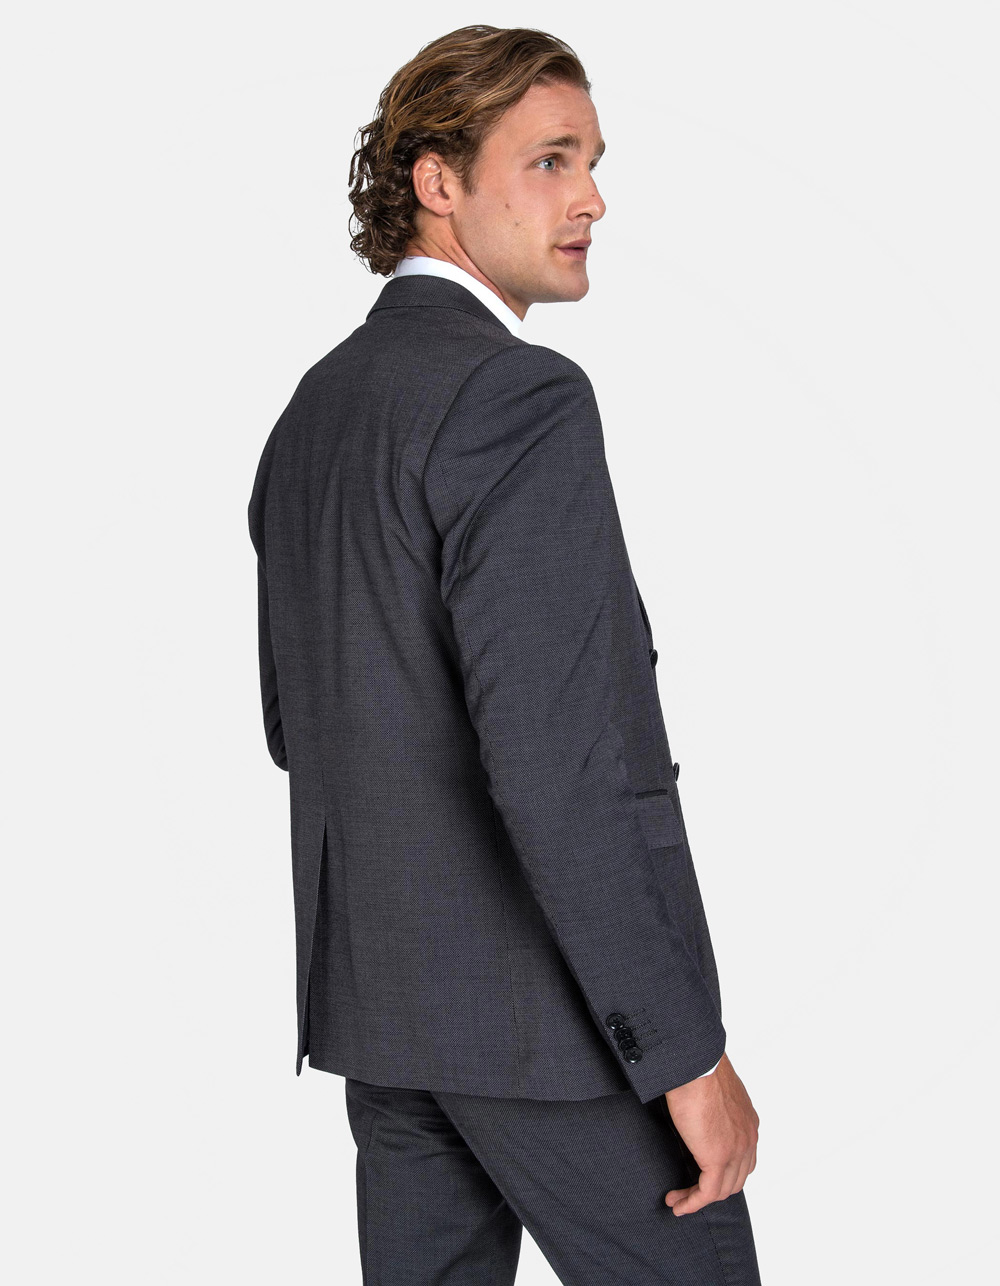 Grey birdseye suit - Backside